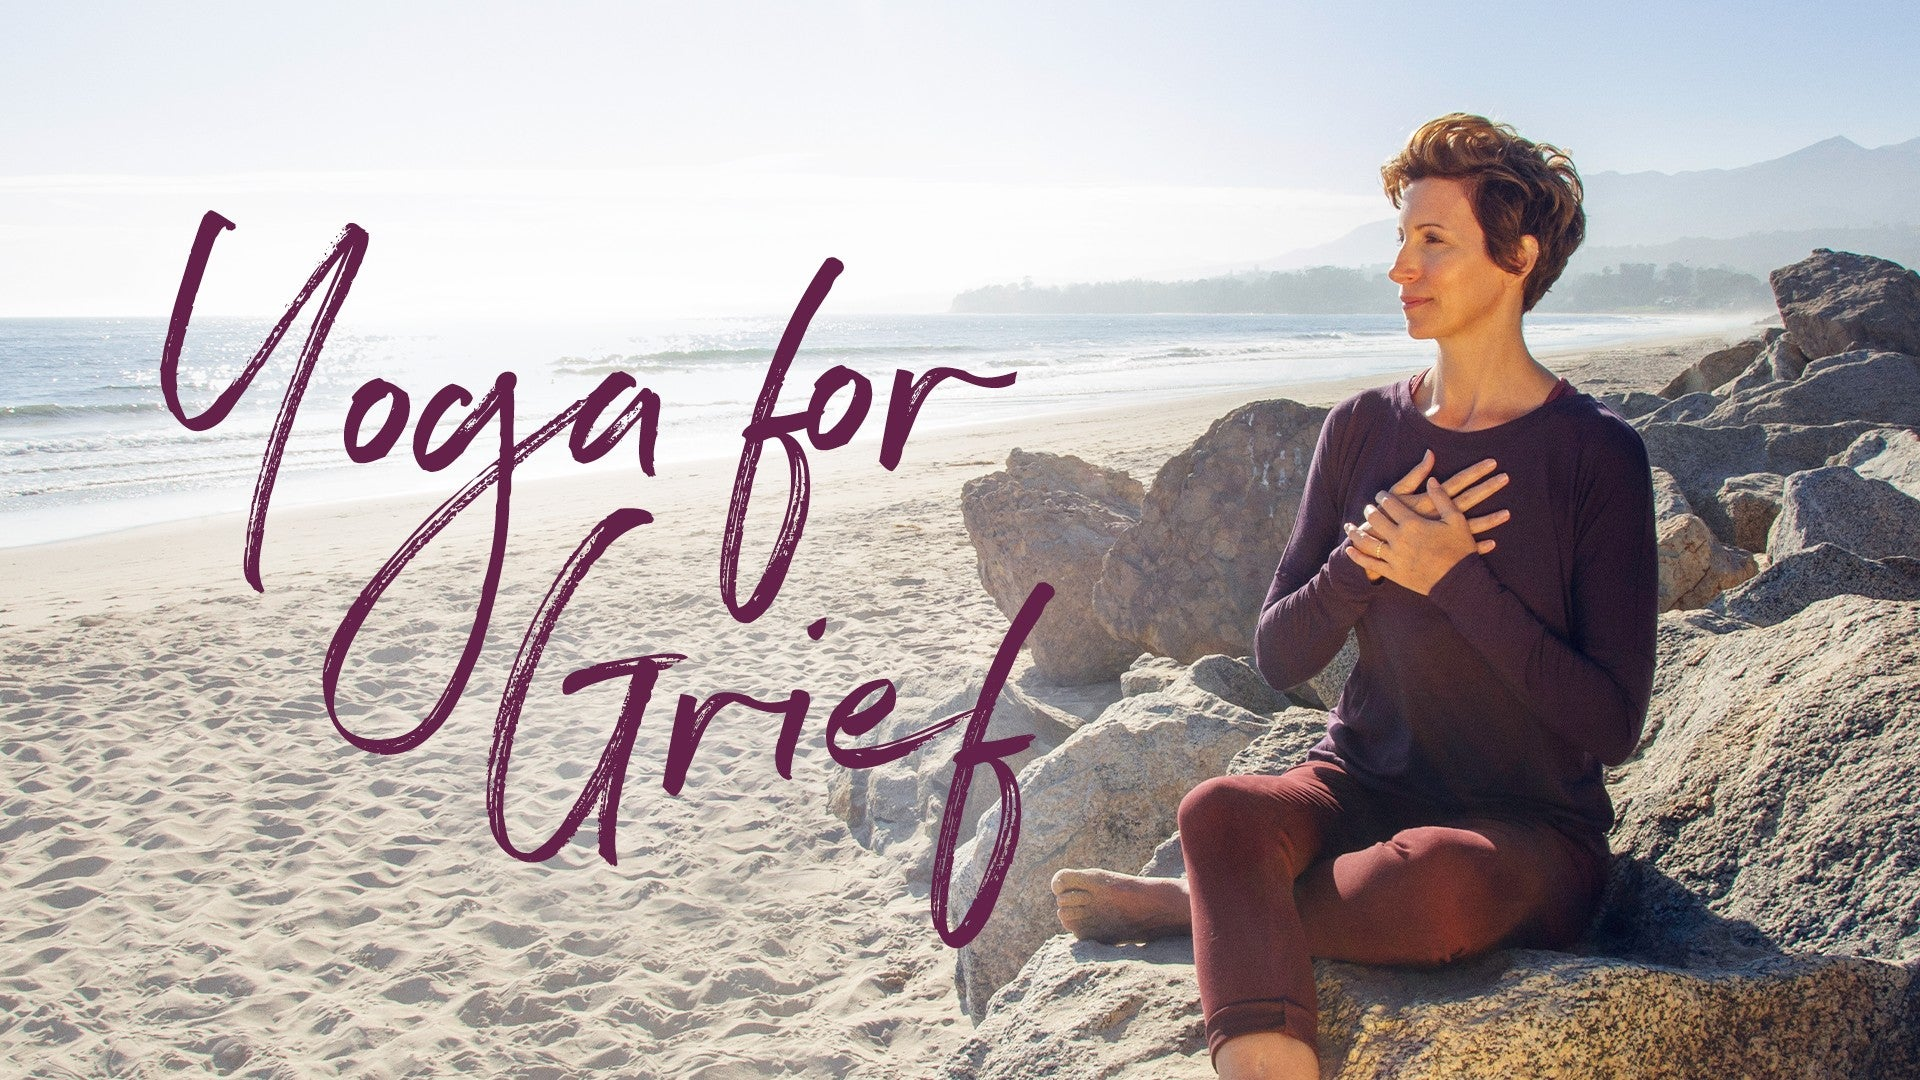 Yoga for Grief Artwork